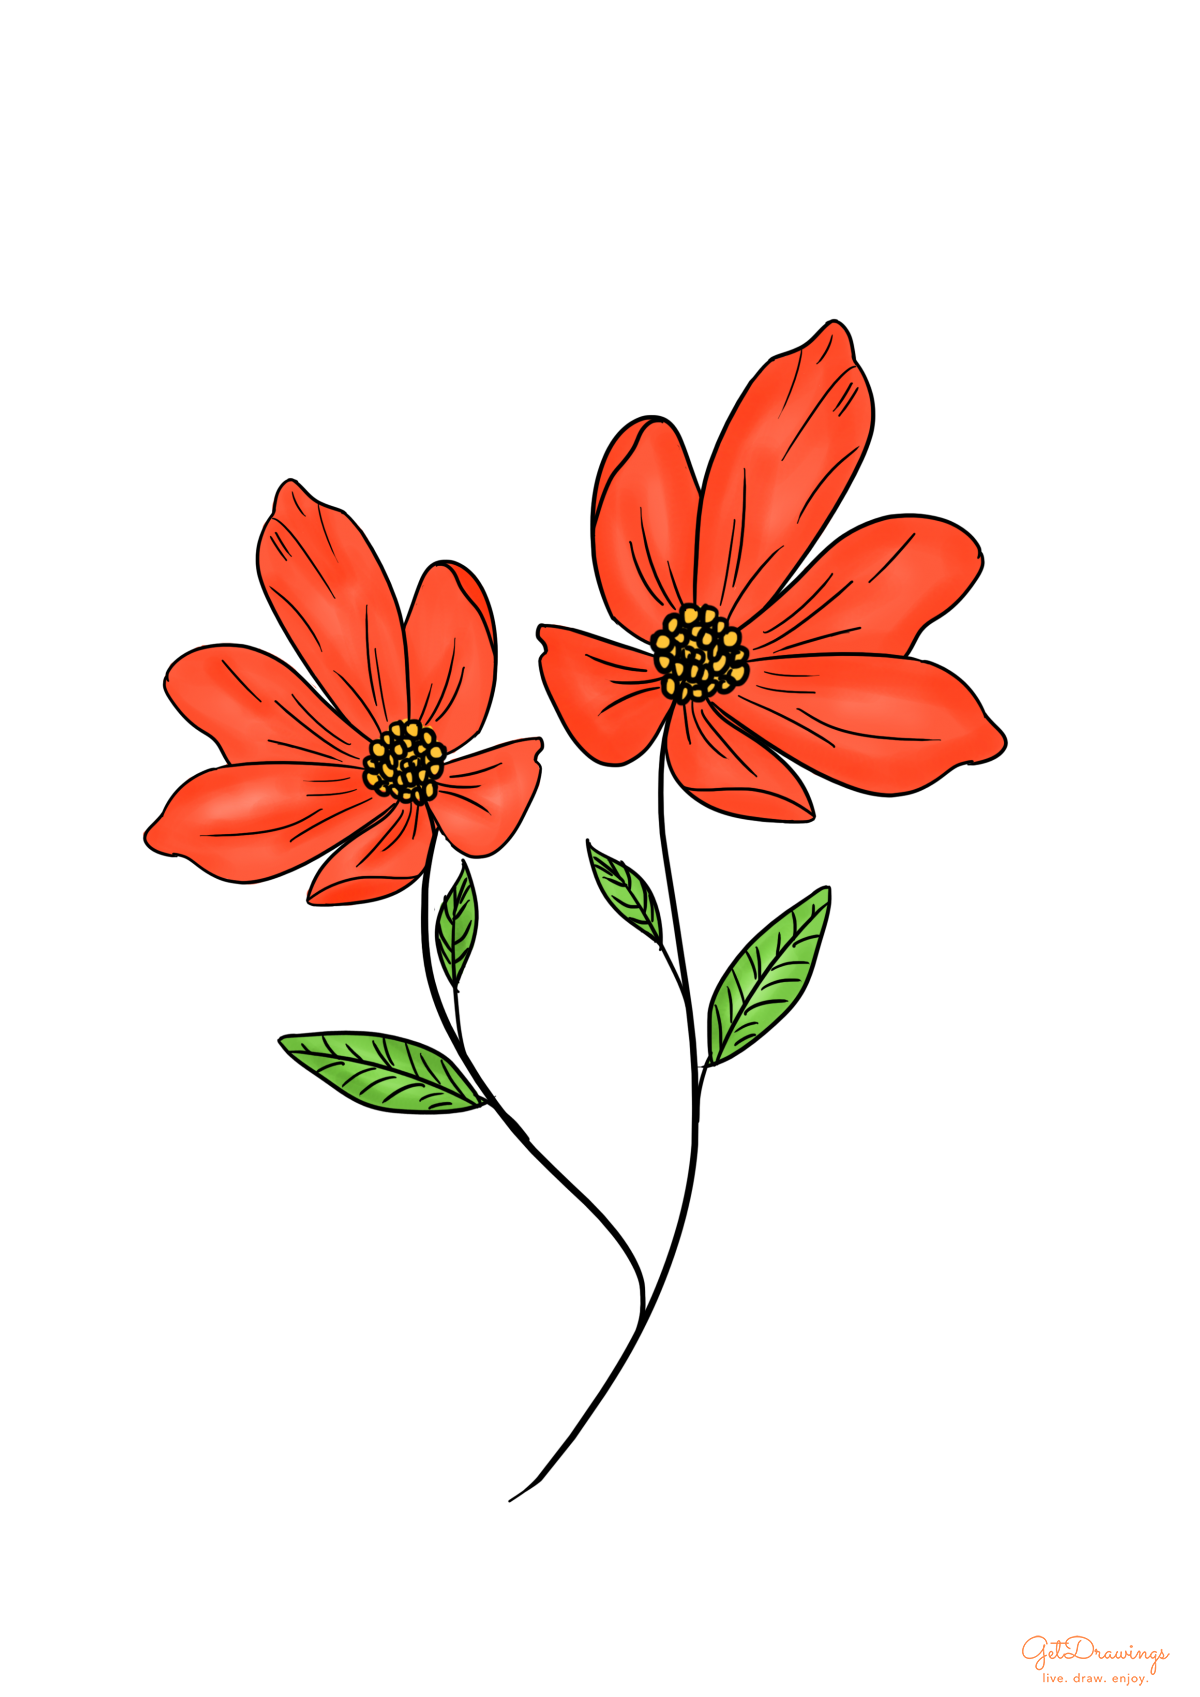 How to draw a red Flower?